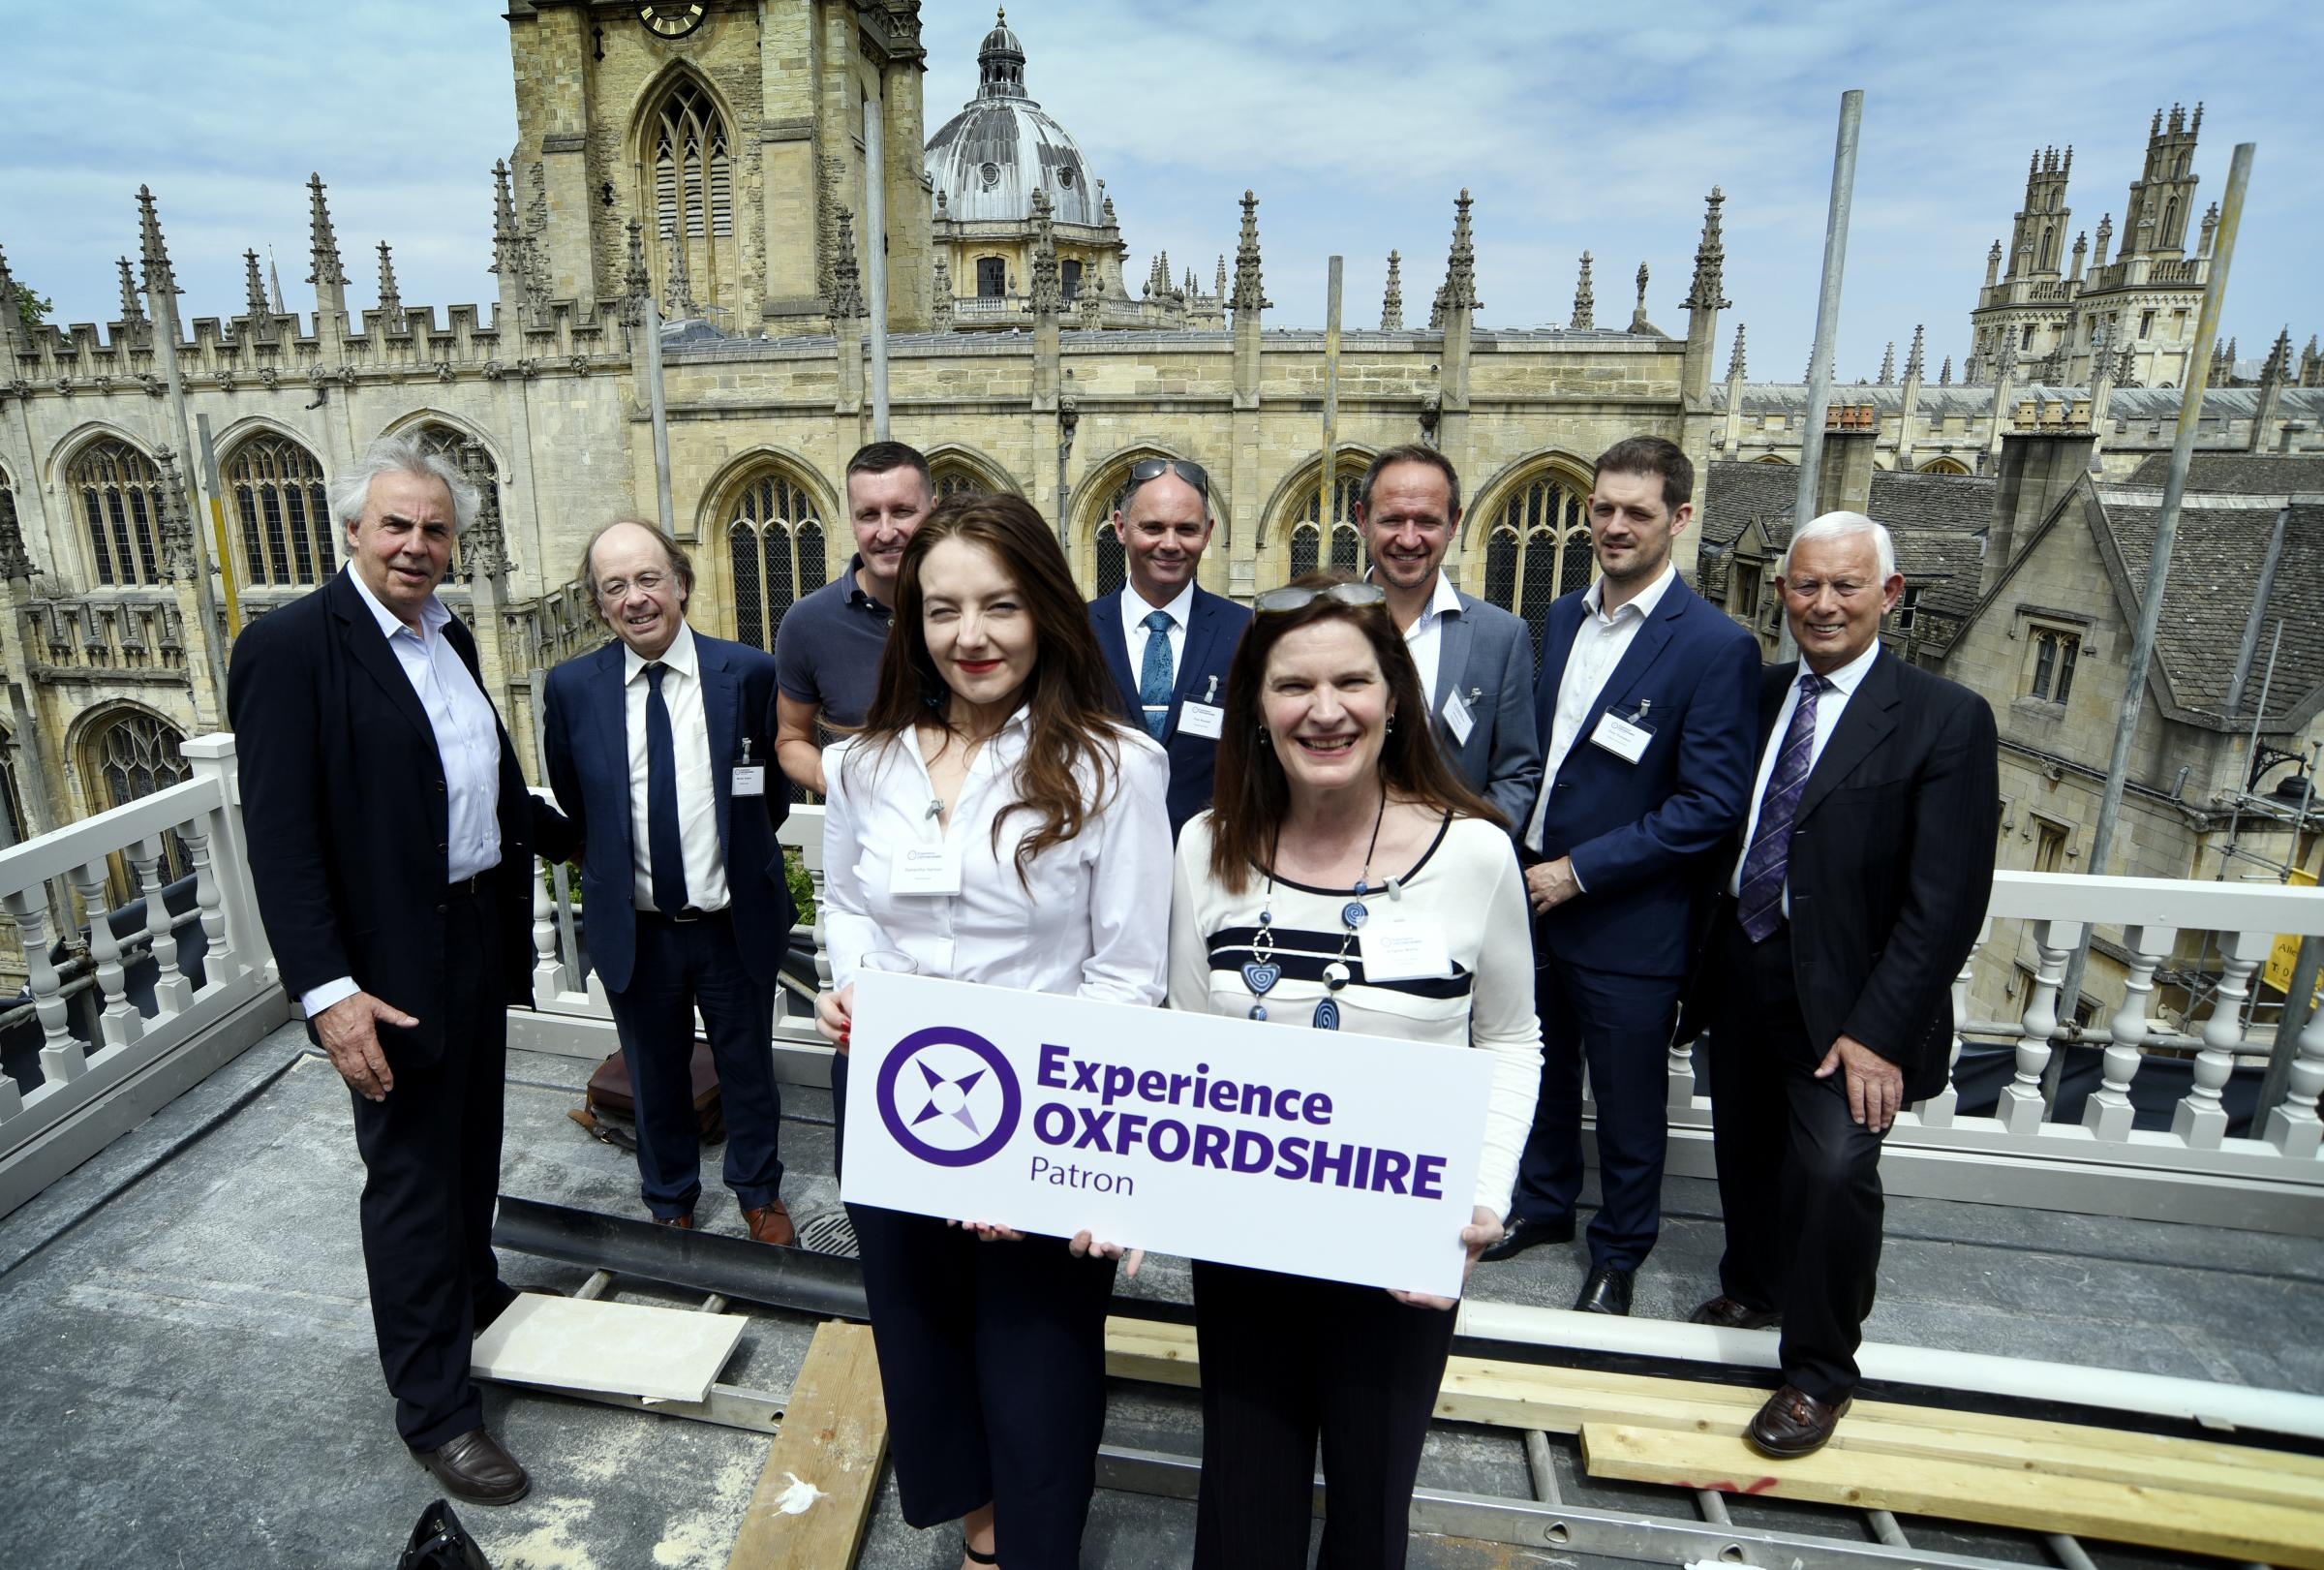 Business leaders gather for the launch of Experience Oxfordshire's new Patron scheme. Pic Experience Oxfordshire